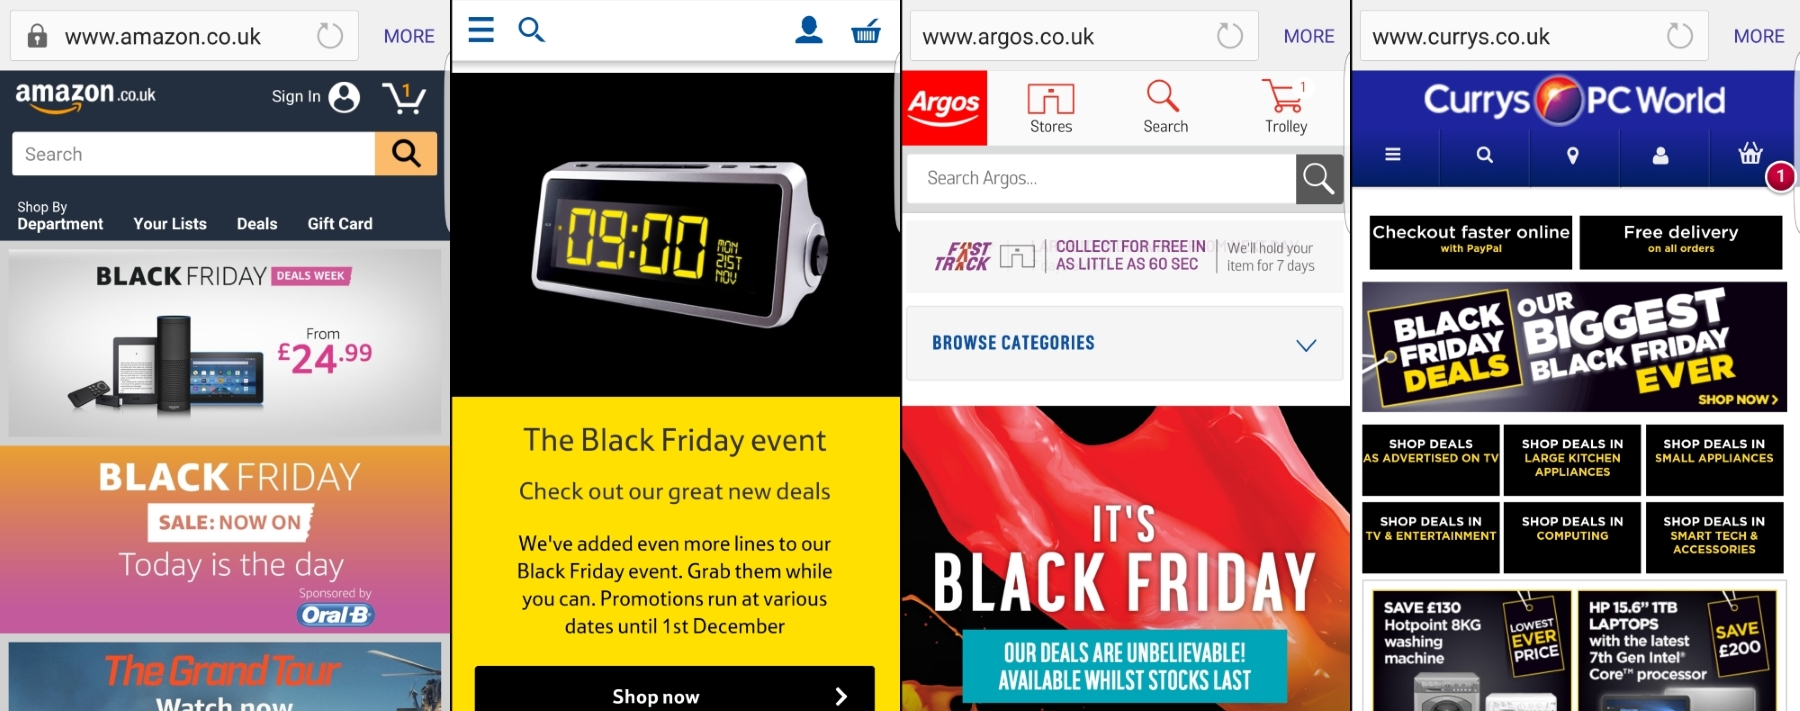 Black Friday: How do Top Retailers' Mobile Sites Compare?